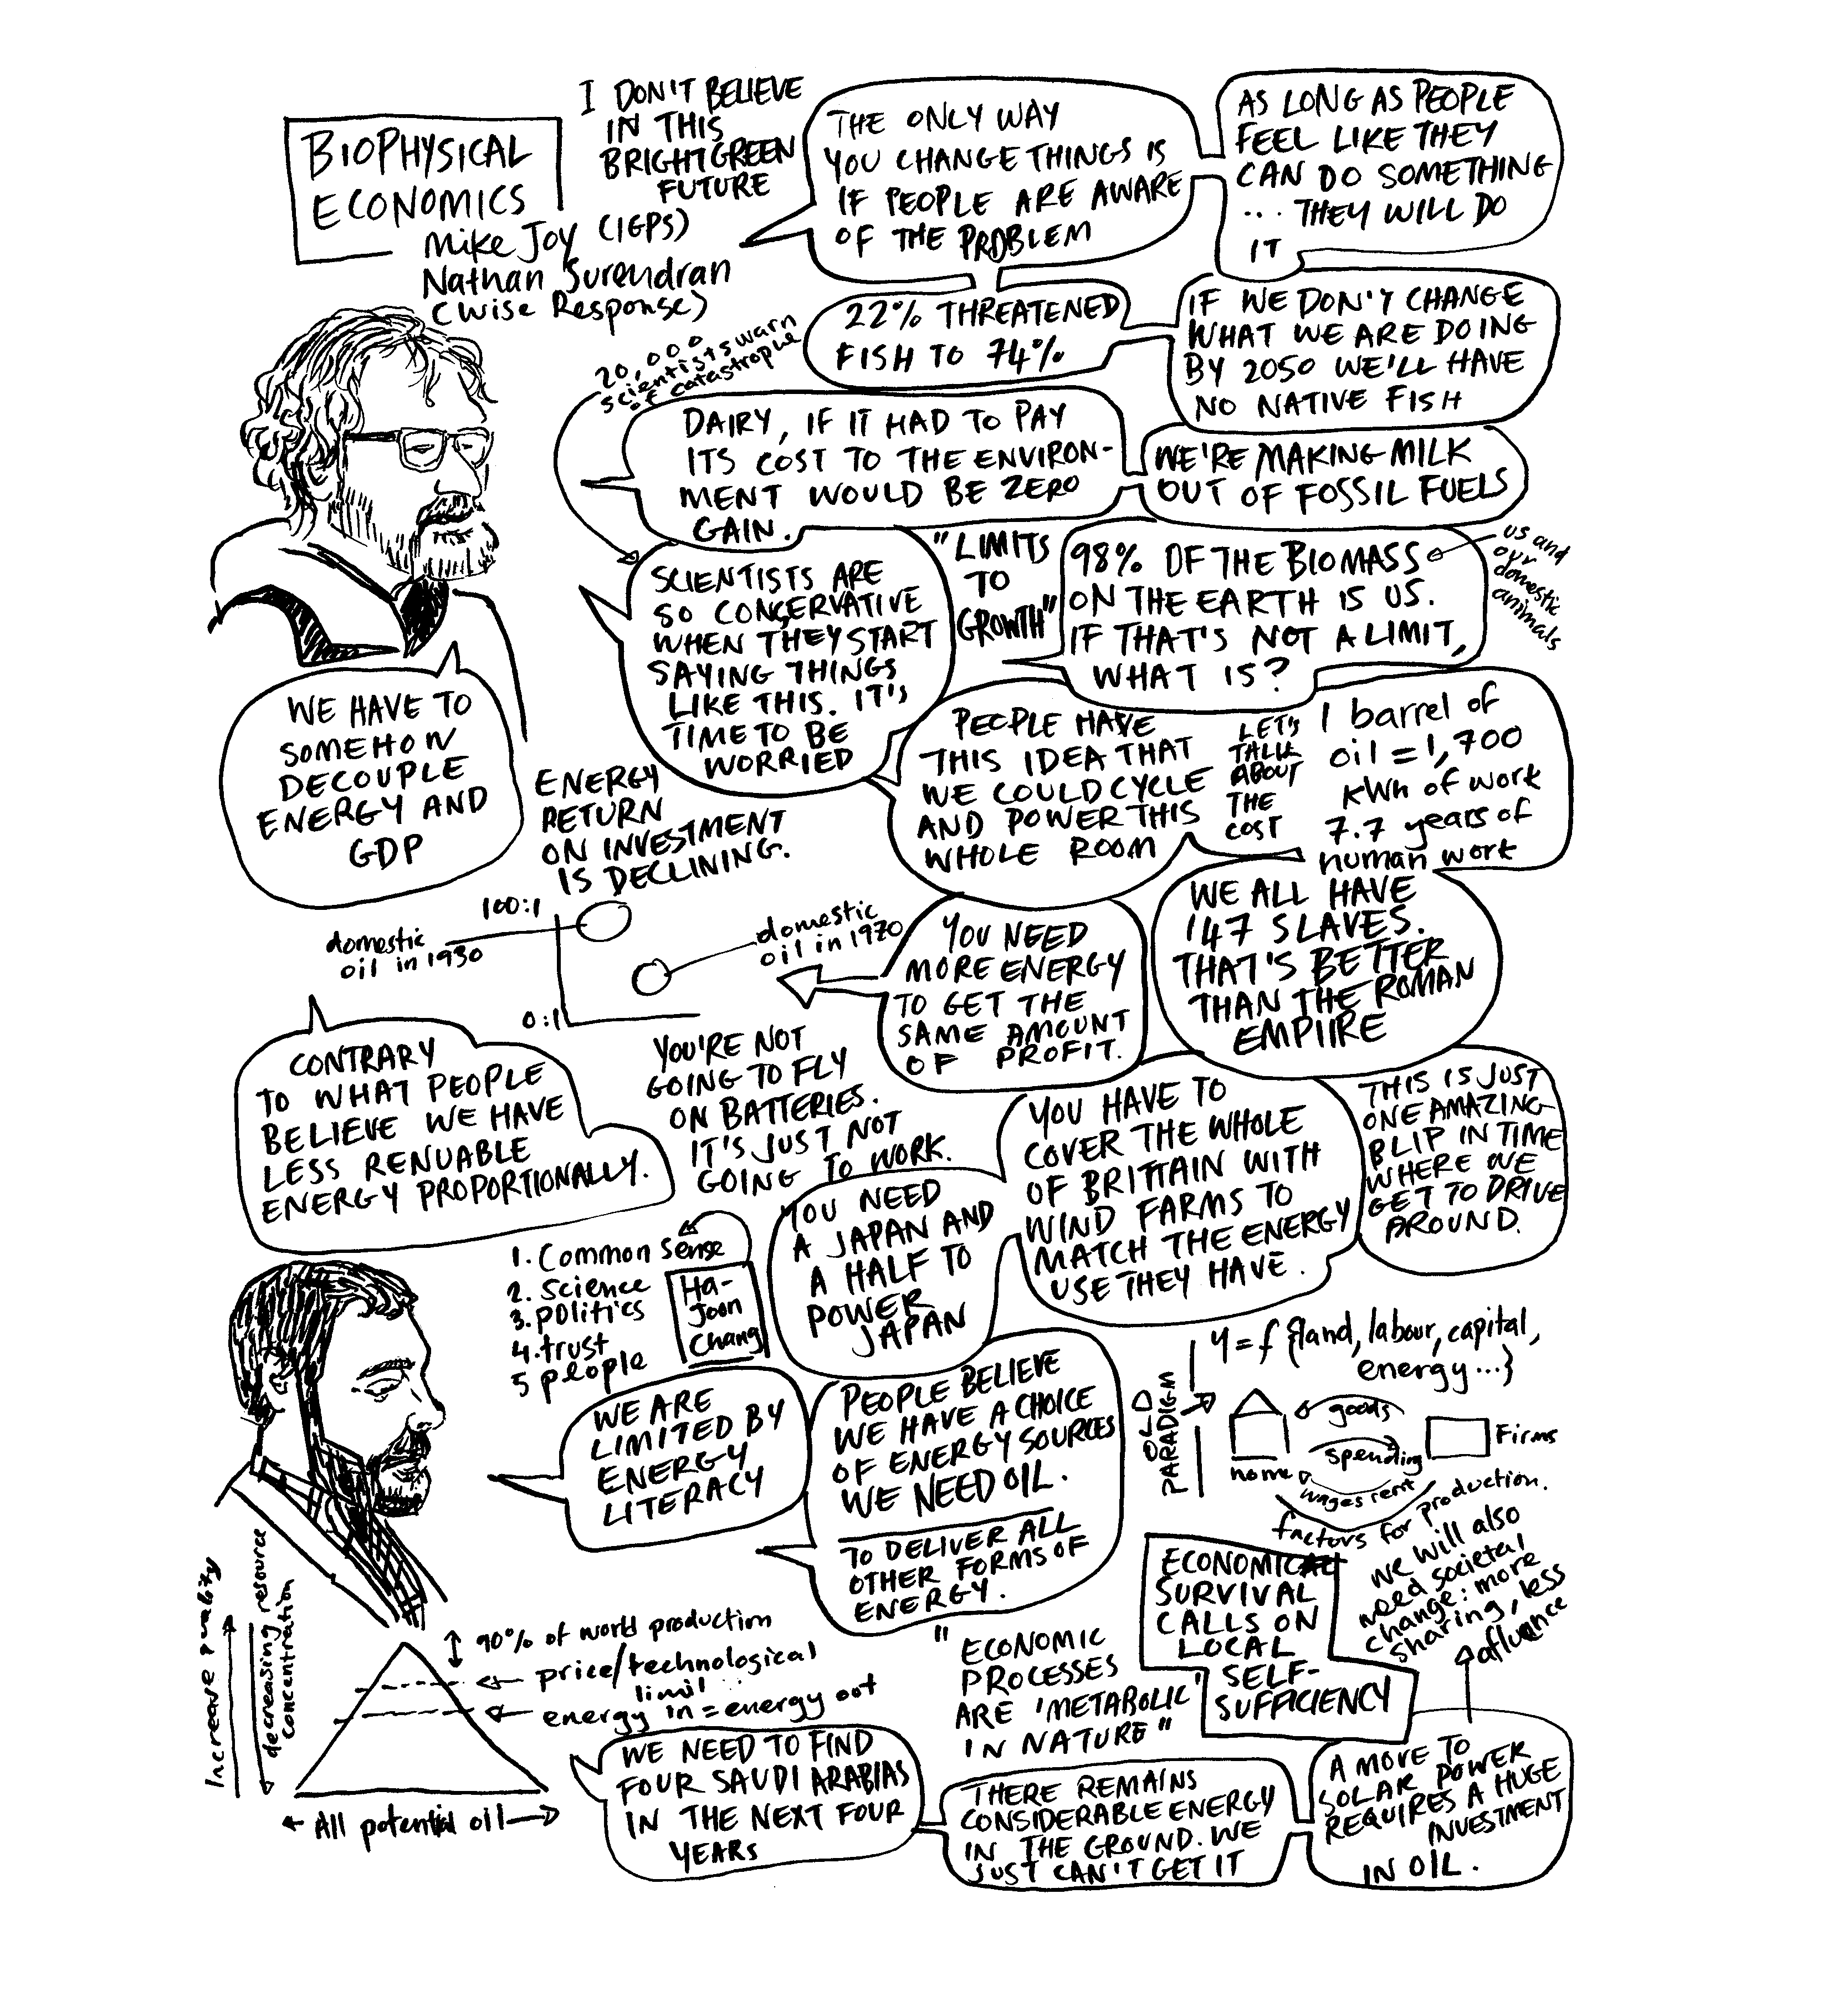 Drawing/comic of Mike Joy and Nathan Surendran giving a talk about Biophysical Economics for the IGPS.